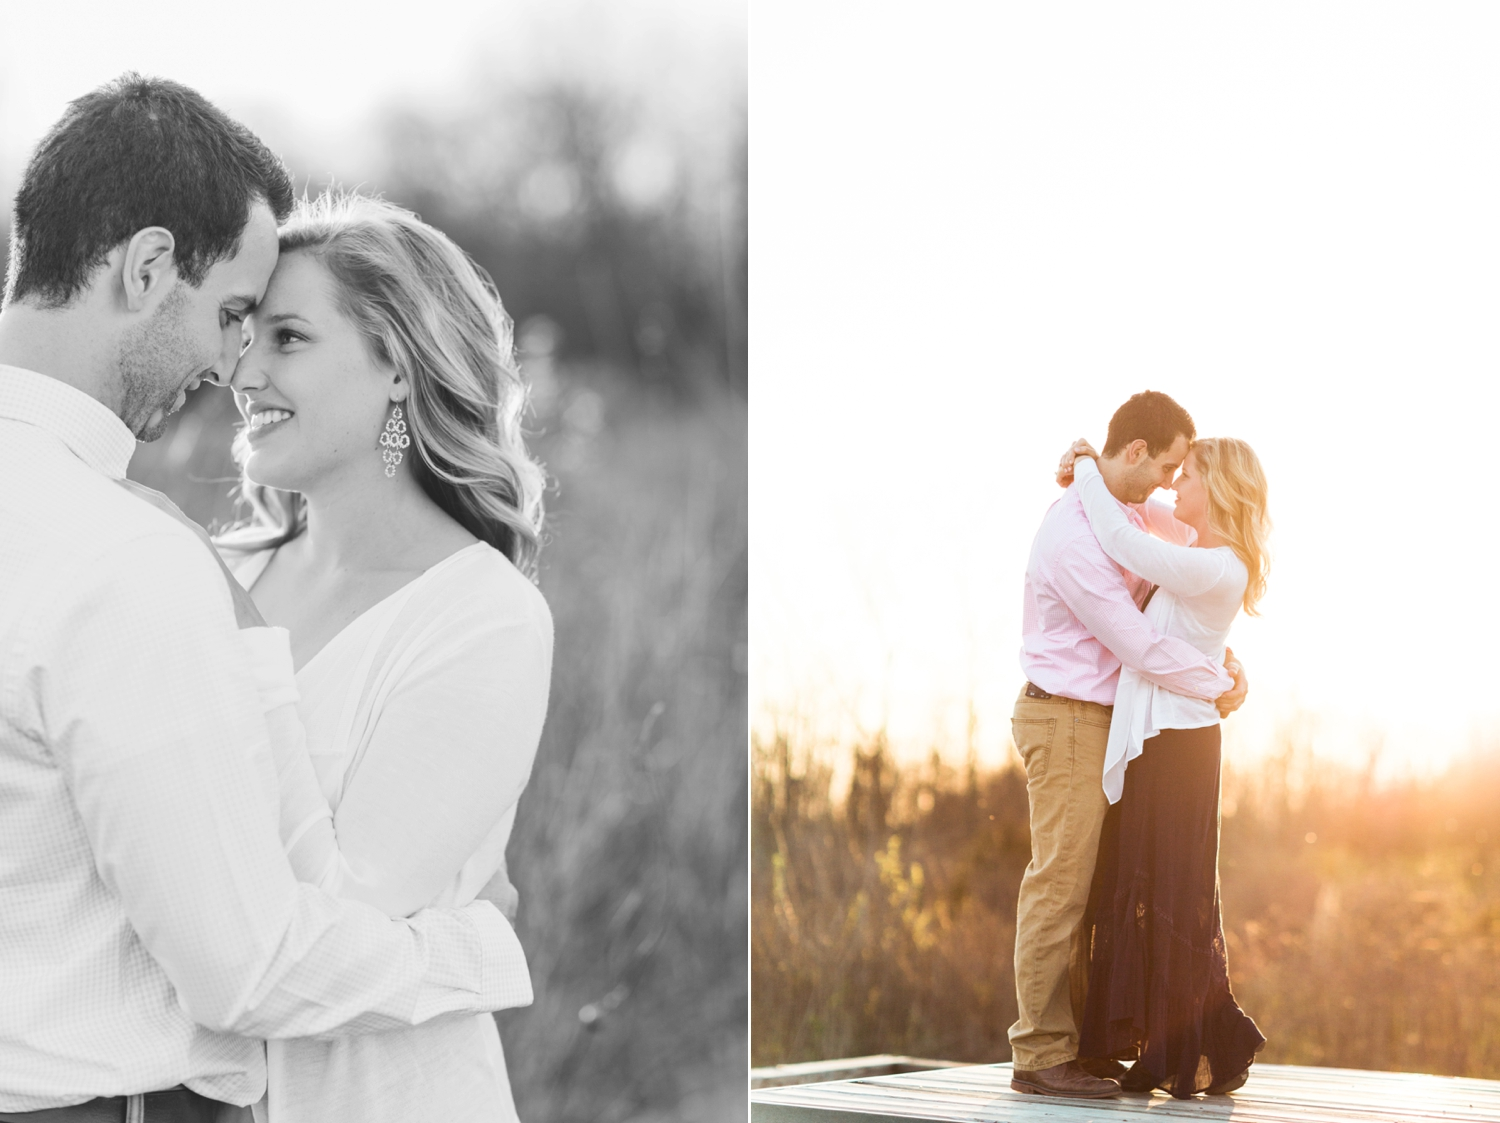 indianapolis_wedding_photographer_golden_hour_engagement_chloe_luka_photography_6133.jpg